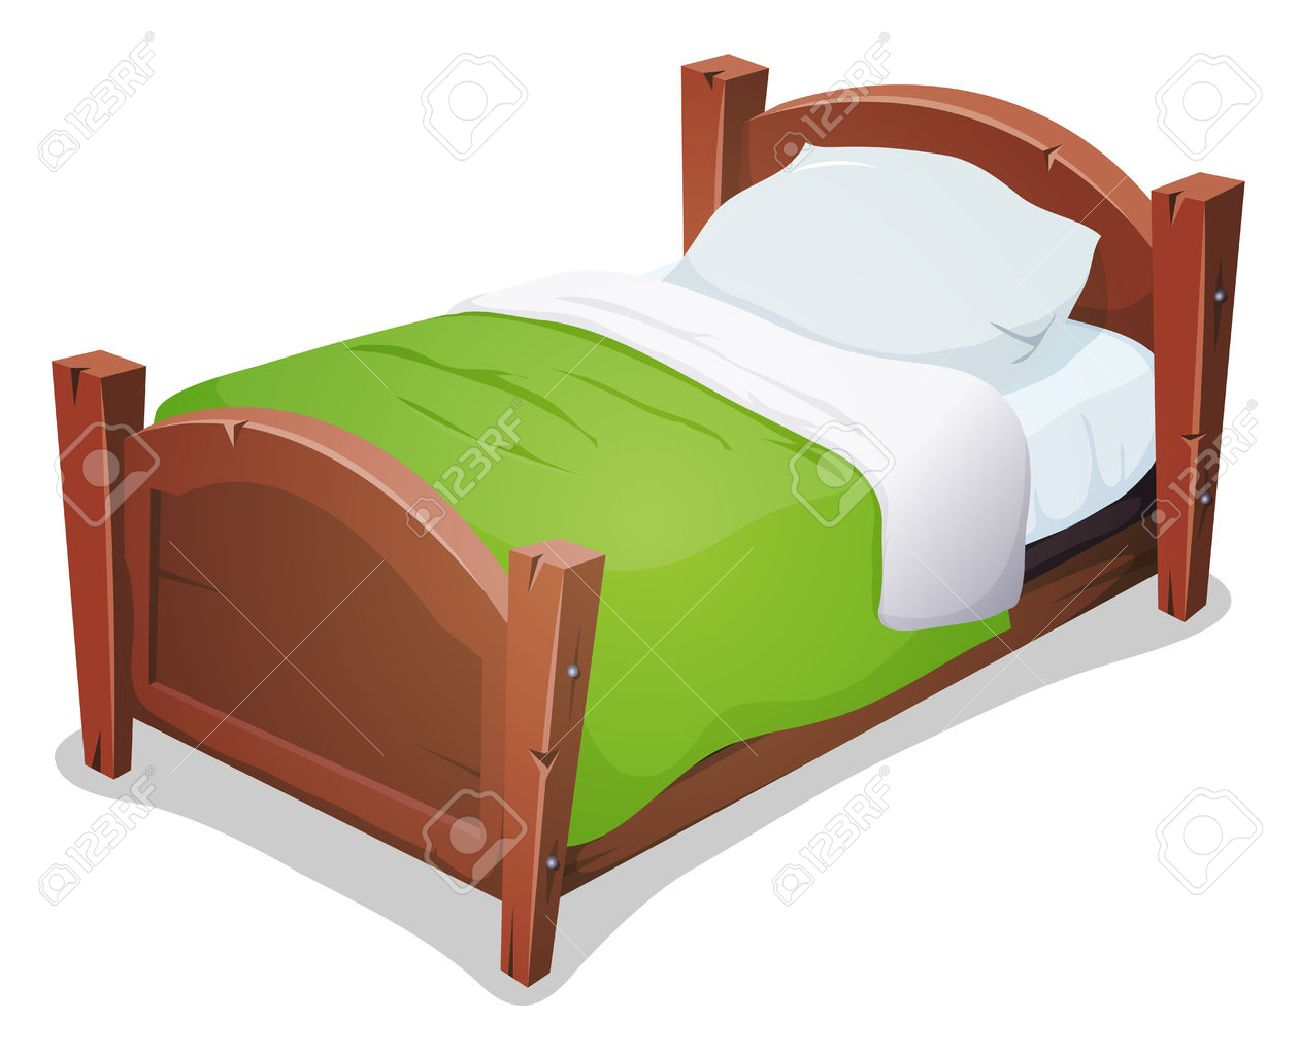 Illustration Of A Cartoon Wooden Children Bed For Boys And Girls Royalty Free Cliparts Vectors And Stock Illustration Image 44194034 The best gifs are on giphy. illustration of a cartoon wooden children bed for boys and girls